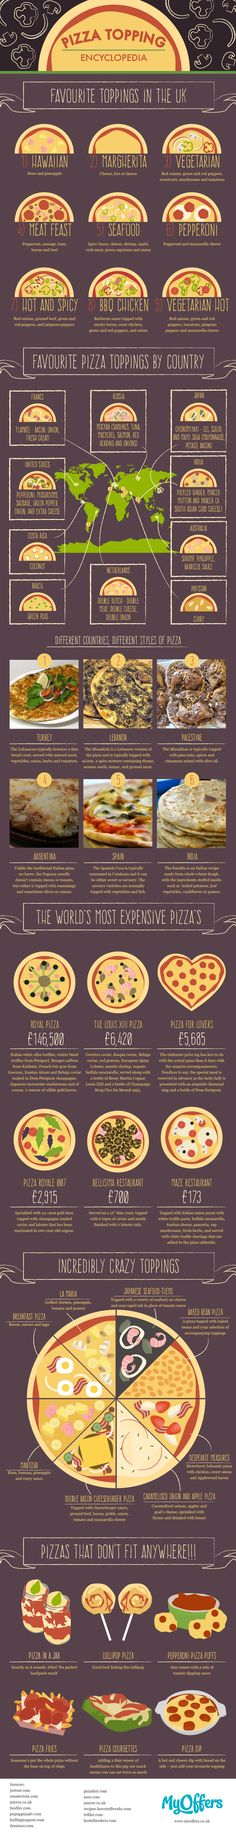 The Ultimate Pizza Topping Encyclopedia #Infographic #Food #Pizza